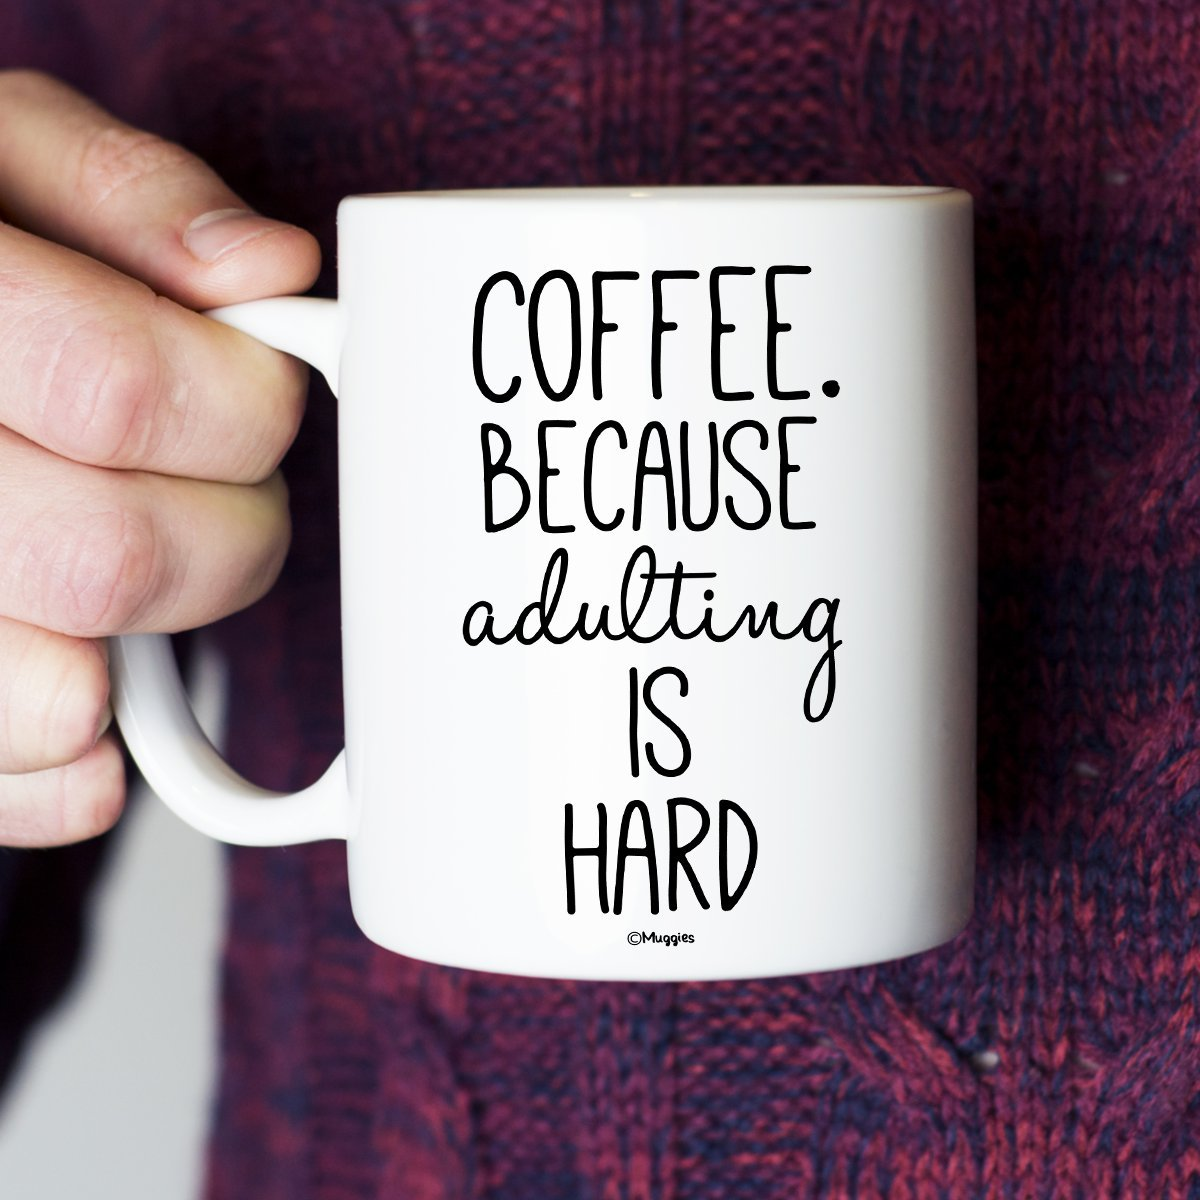 'coffee because adulting is hard' mug